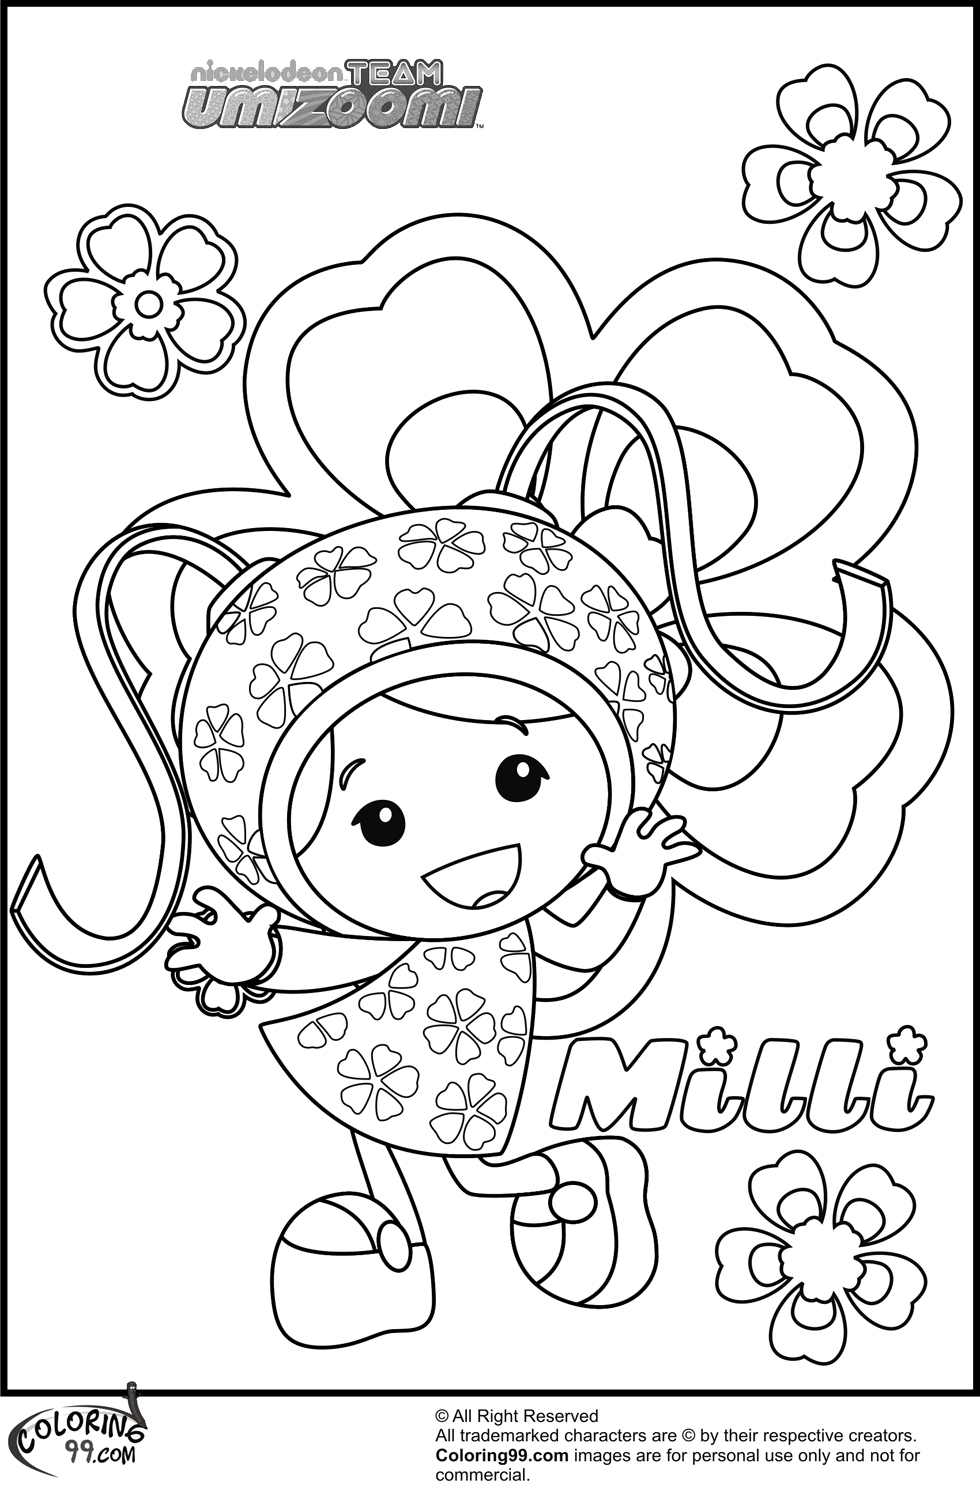 980x1500 Team Umizoomi Coloring Pages